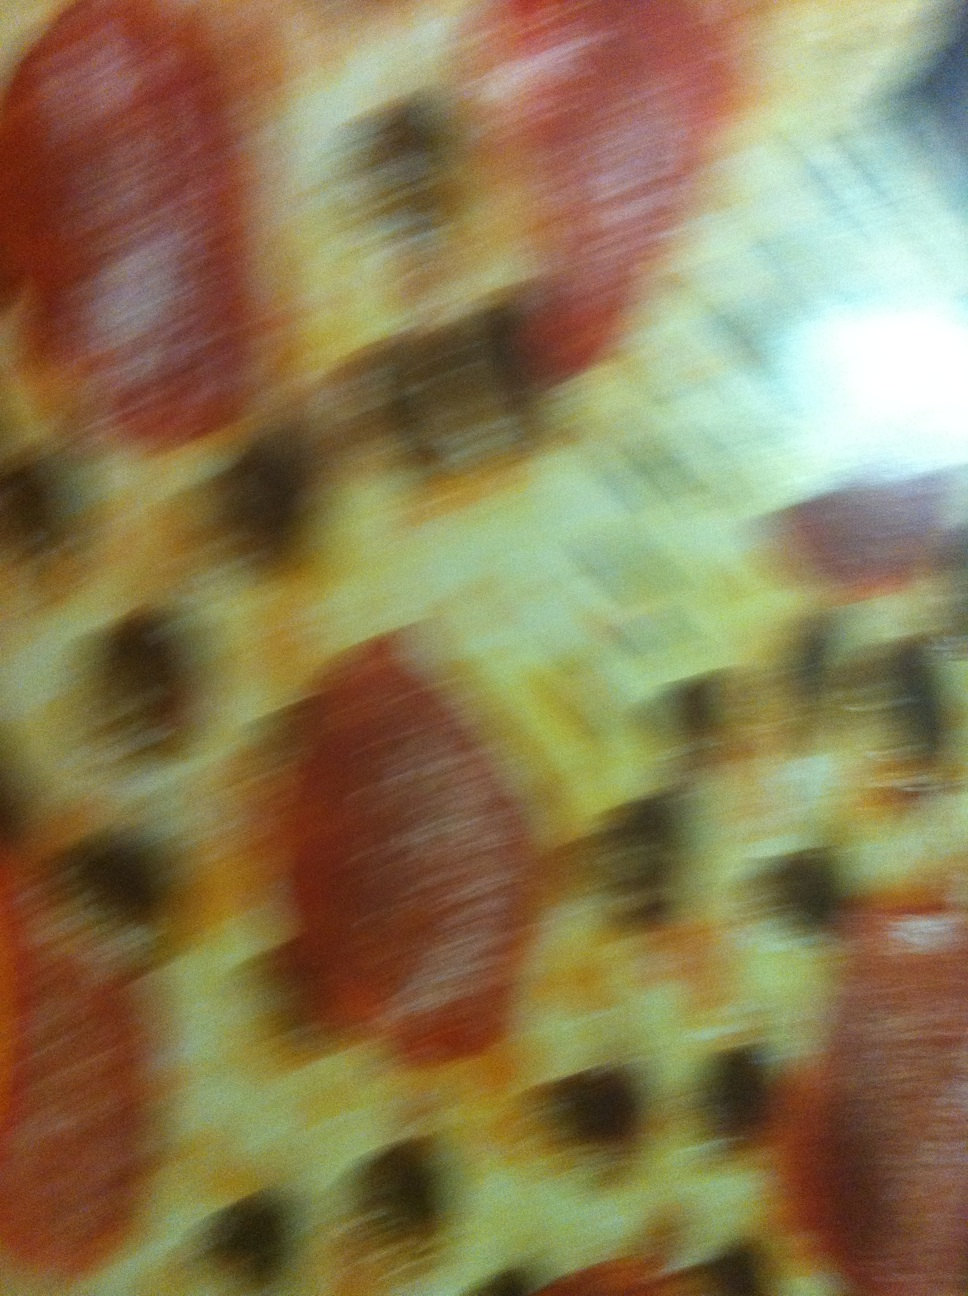 A thumbnail of a photo captured by a person who is blind.         Click the thumbnail to view details about the photo.